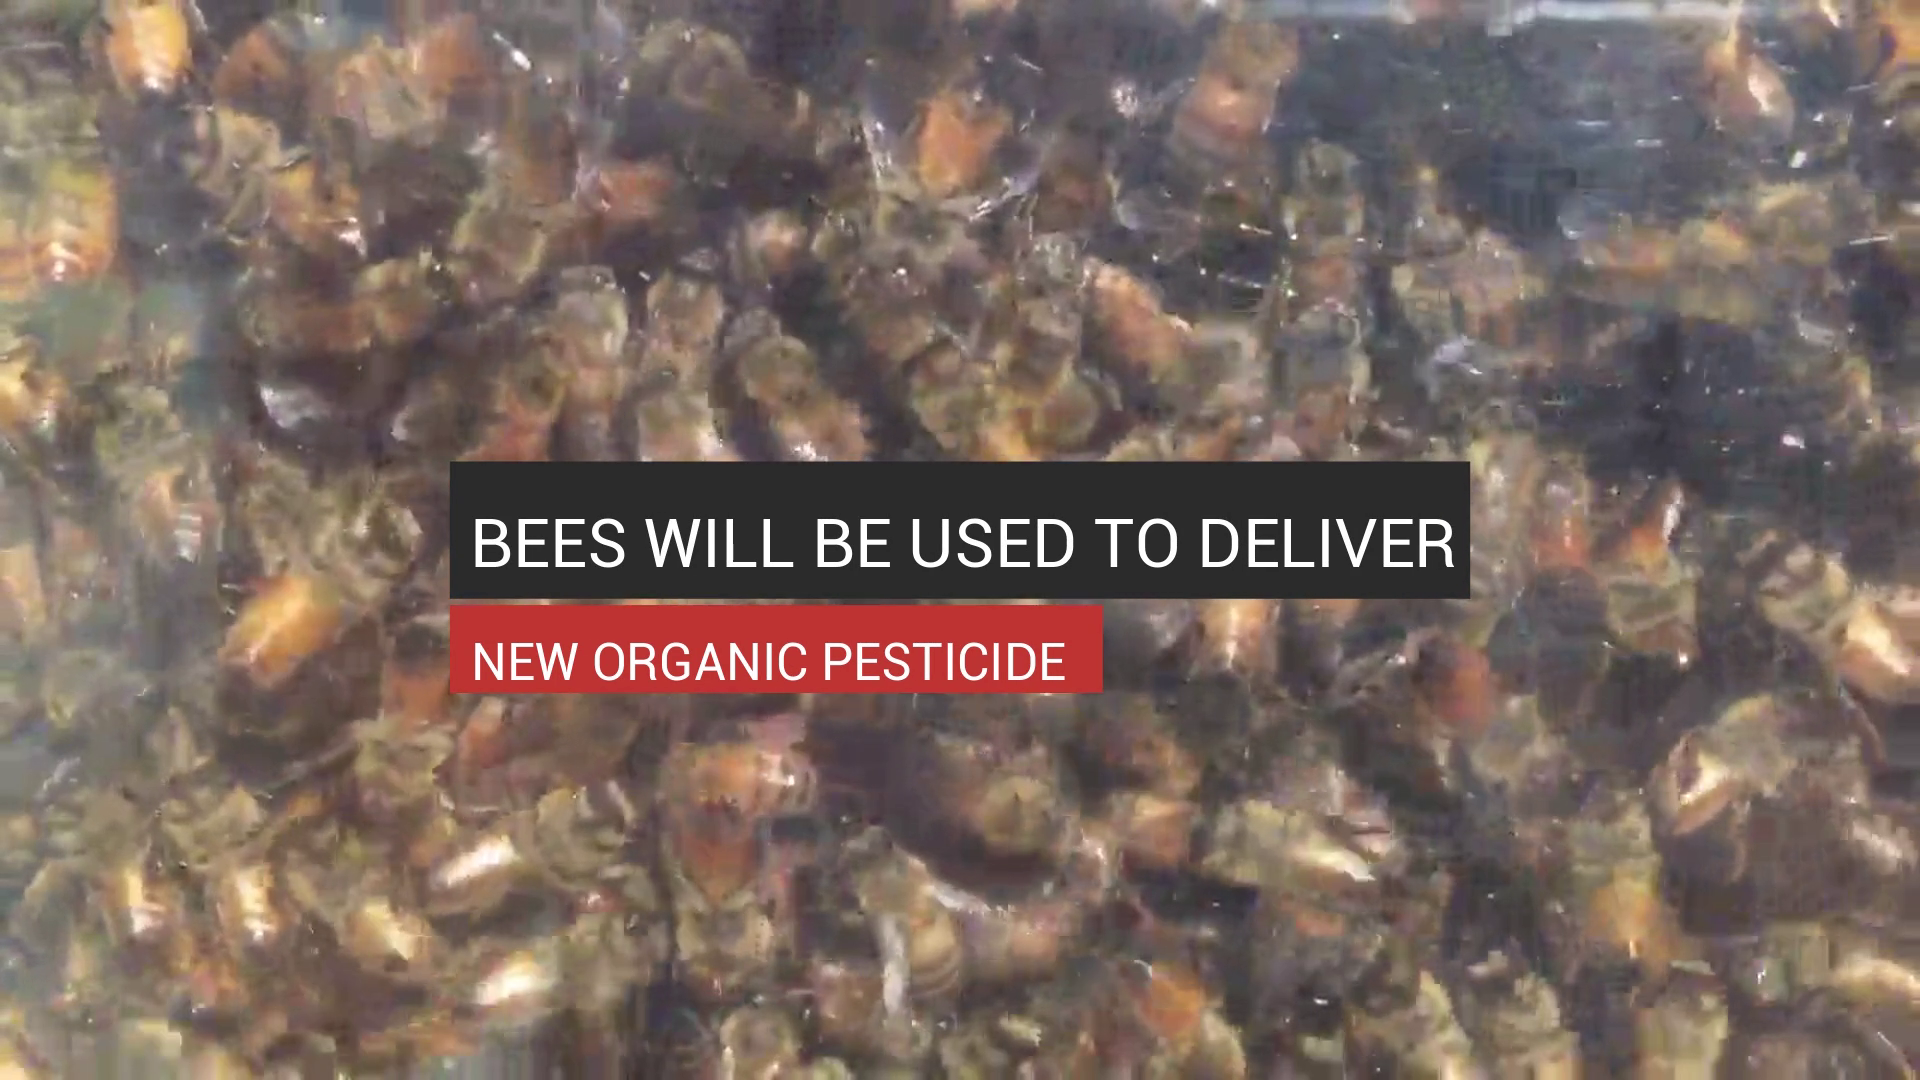 Bees Will Be Used To Deliver New Organic Pesticide